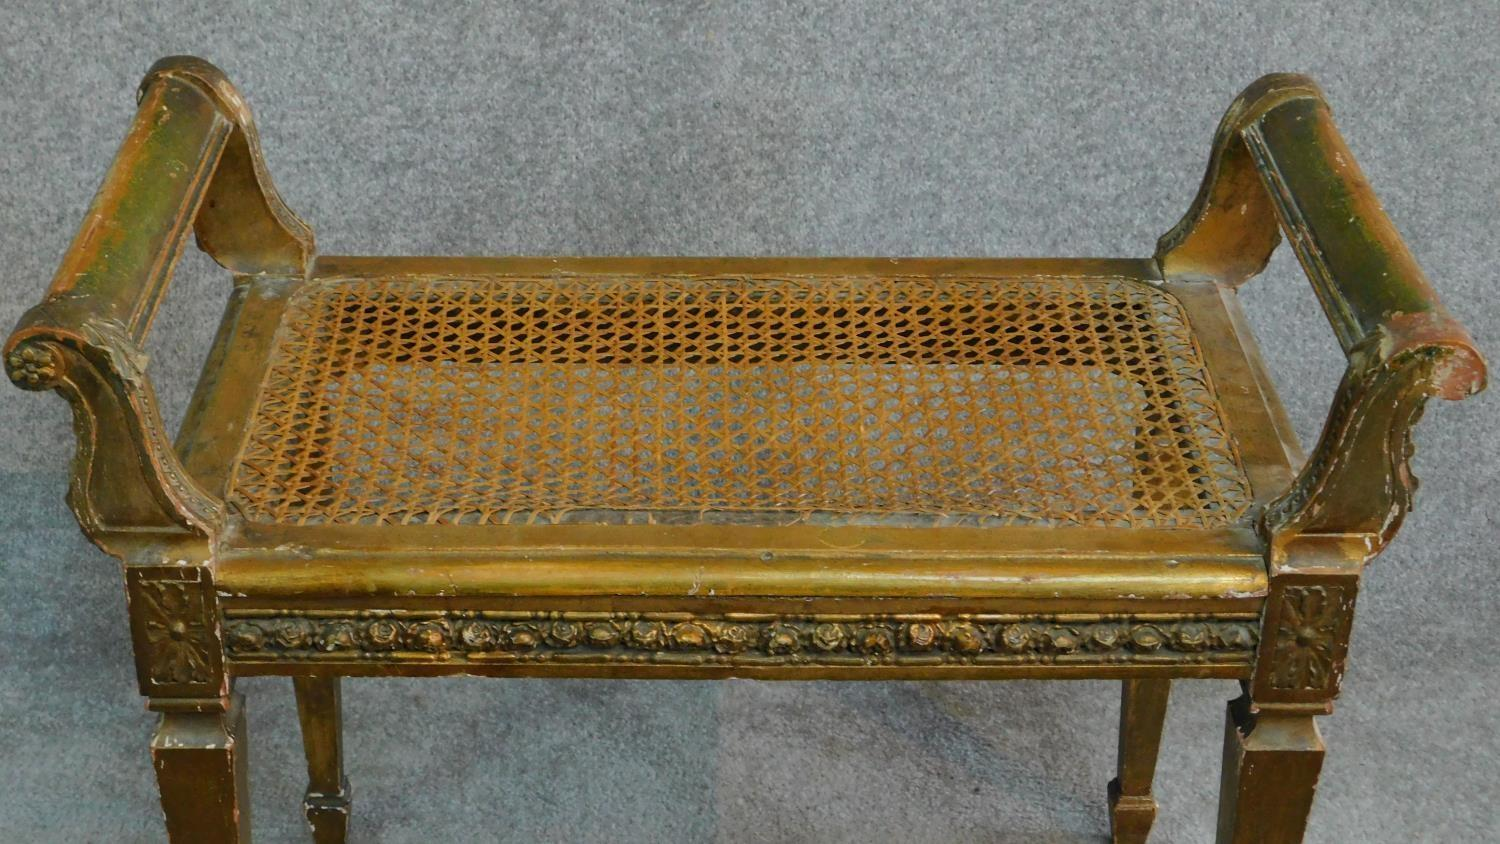 A Victorian gilt stool with caned seat on square tapering supports. H.59 W.69 D.36cm - Image 2 of 5